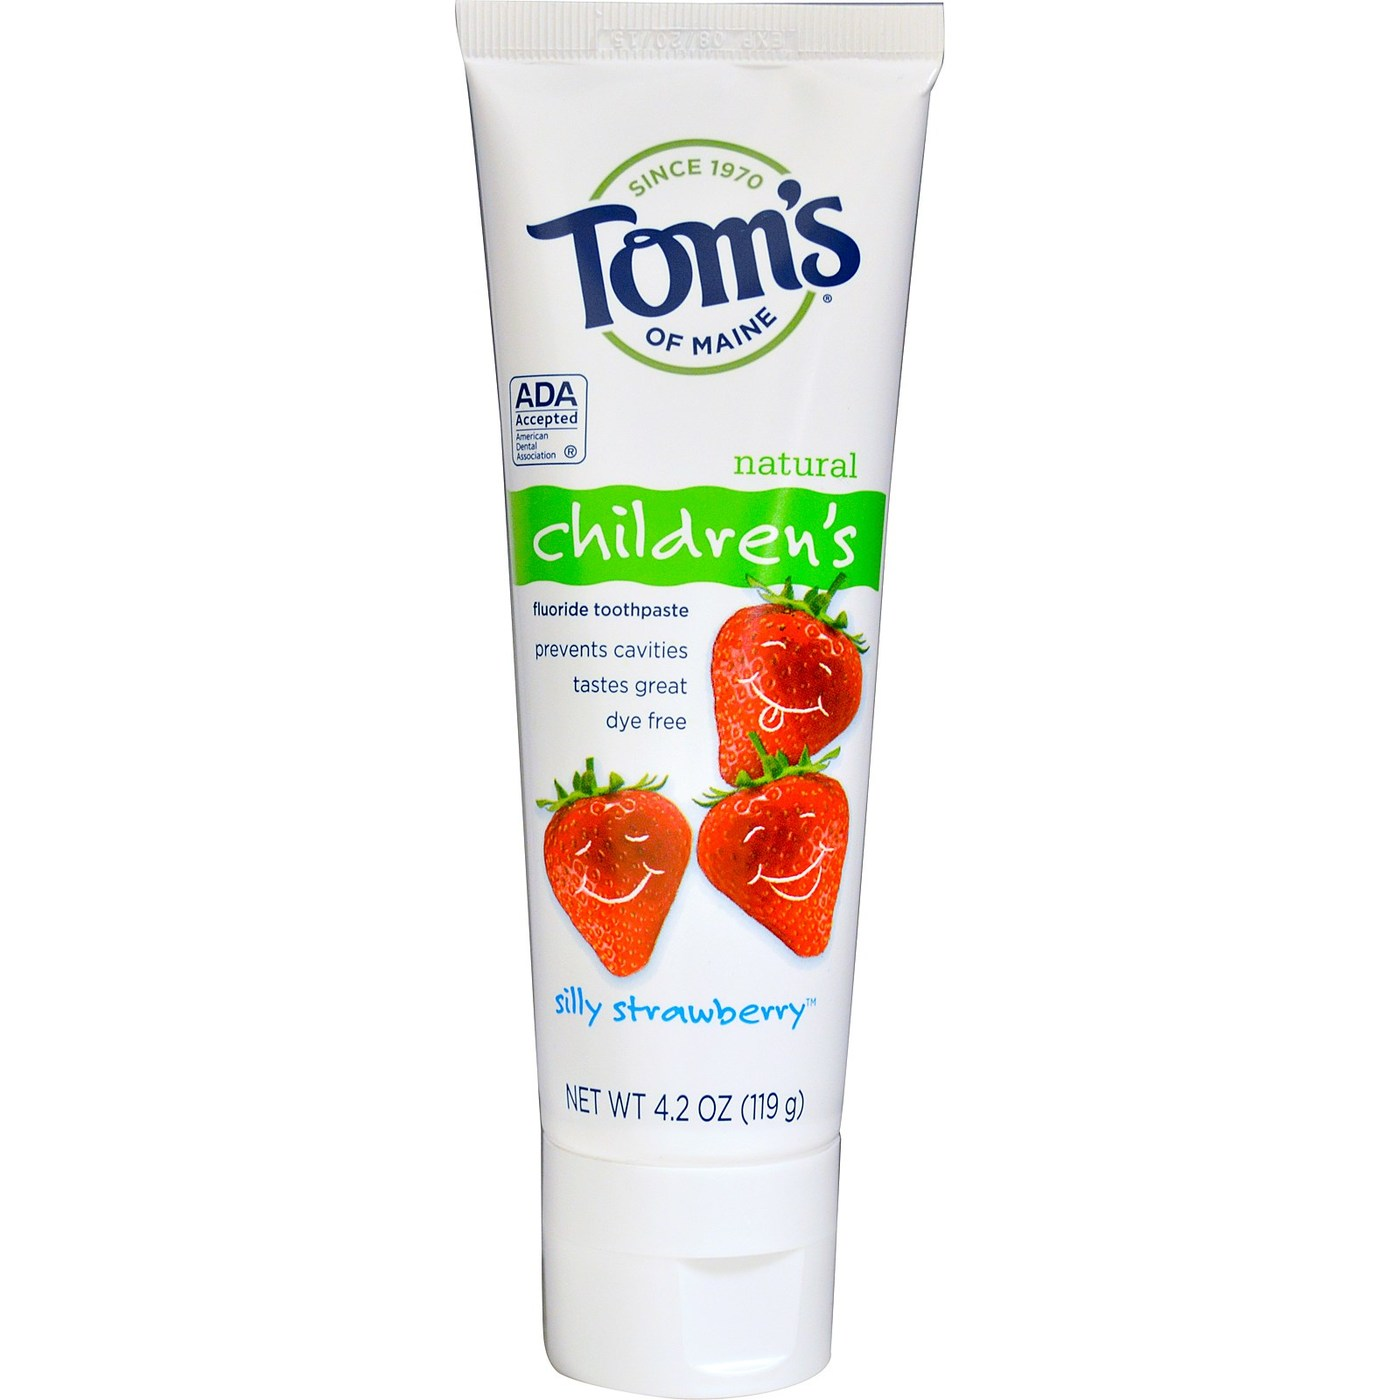 Image Result For Toms Of Maine Fluoride